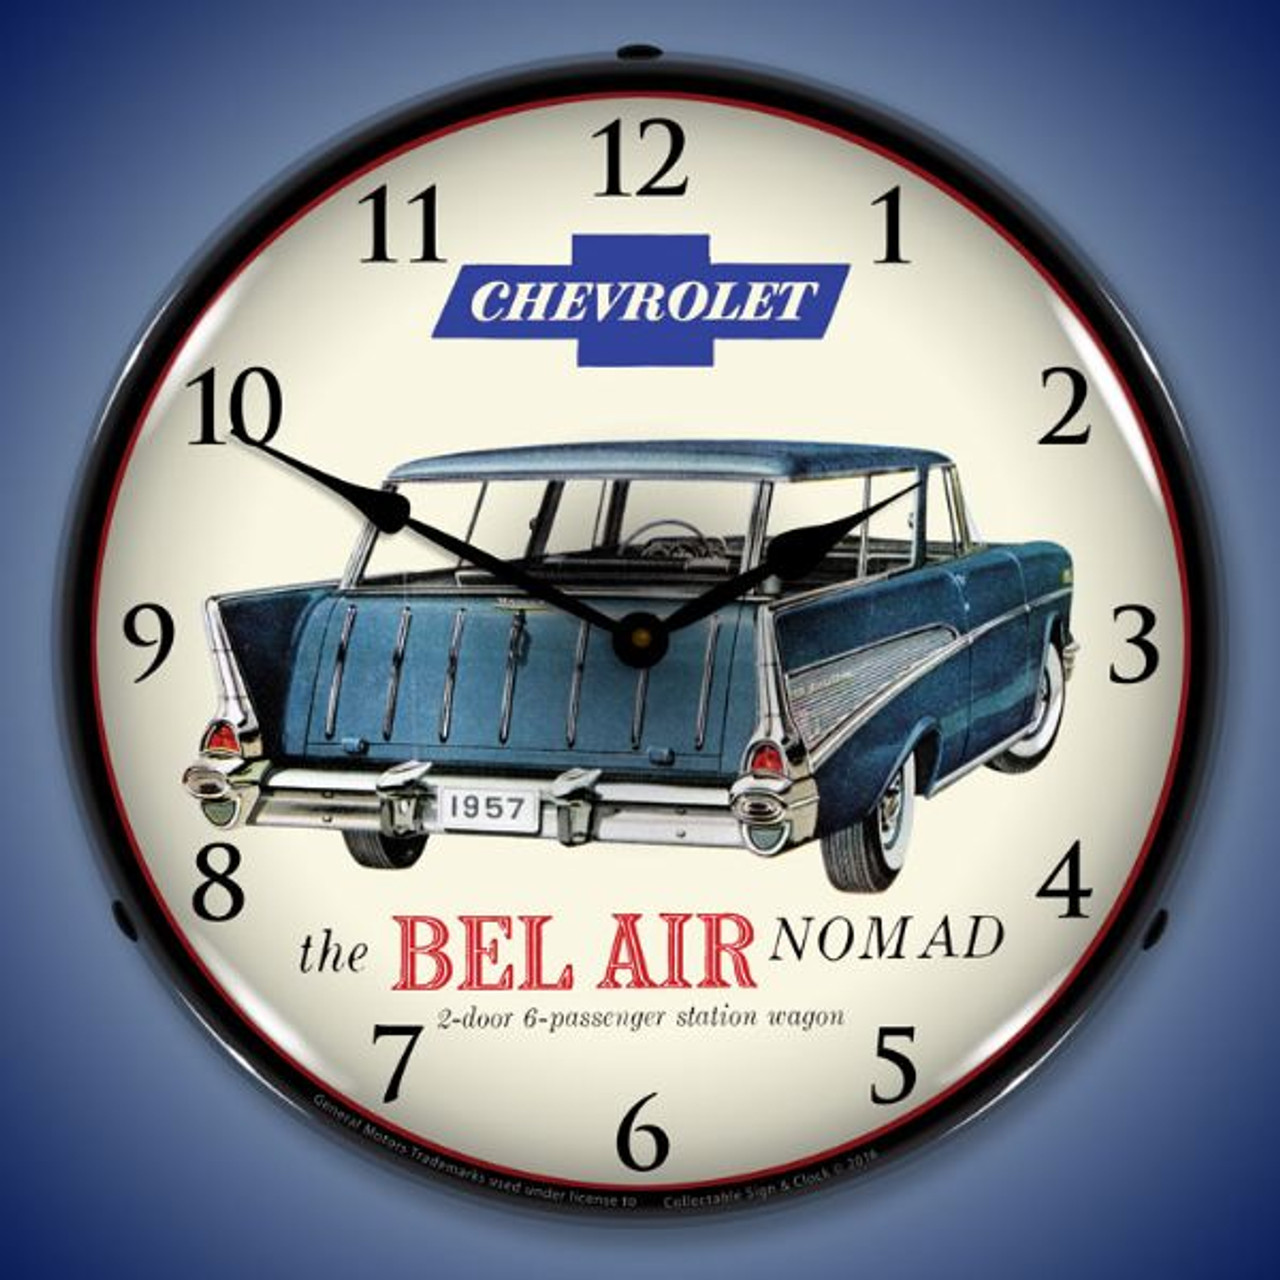 1957 Chevrolet Bel Air Nomad Lighted Wall Clock 14 x 14 Inches